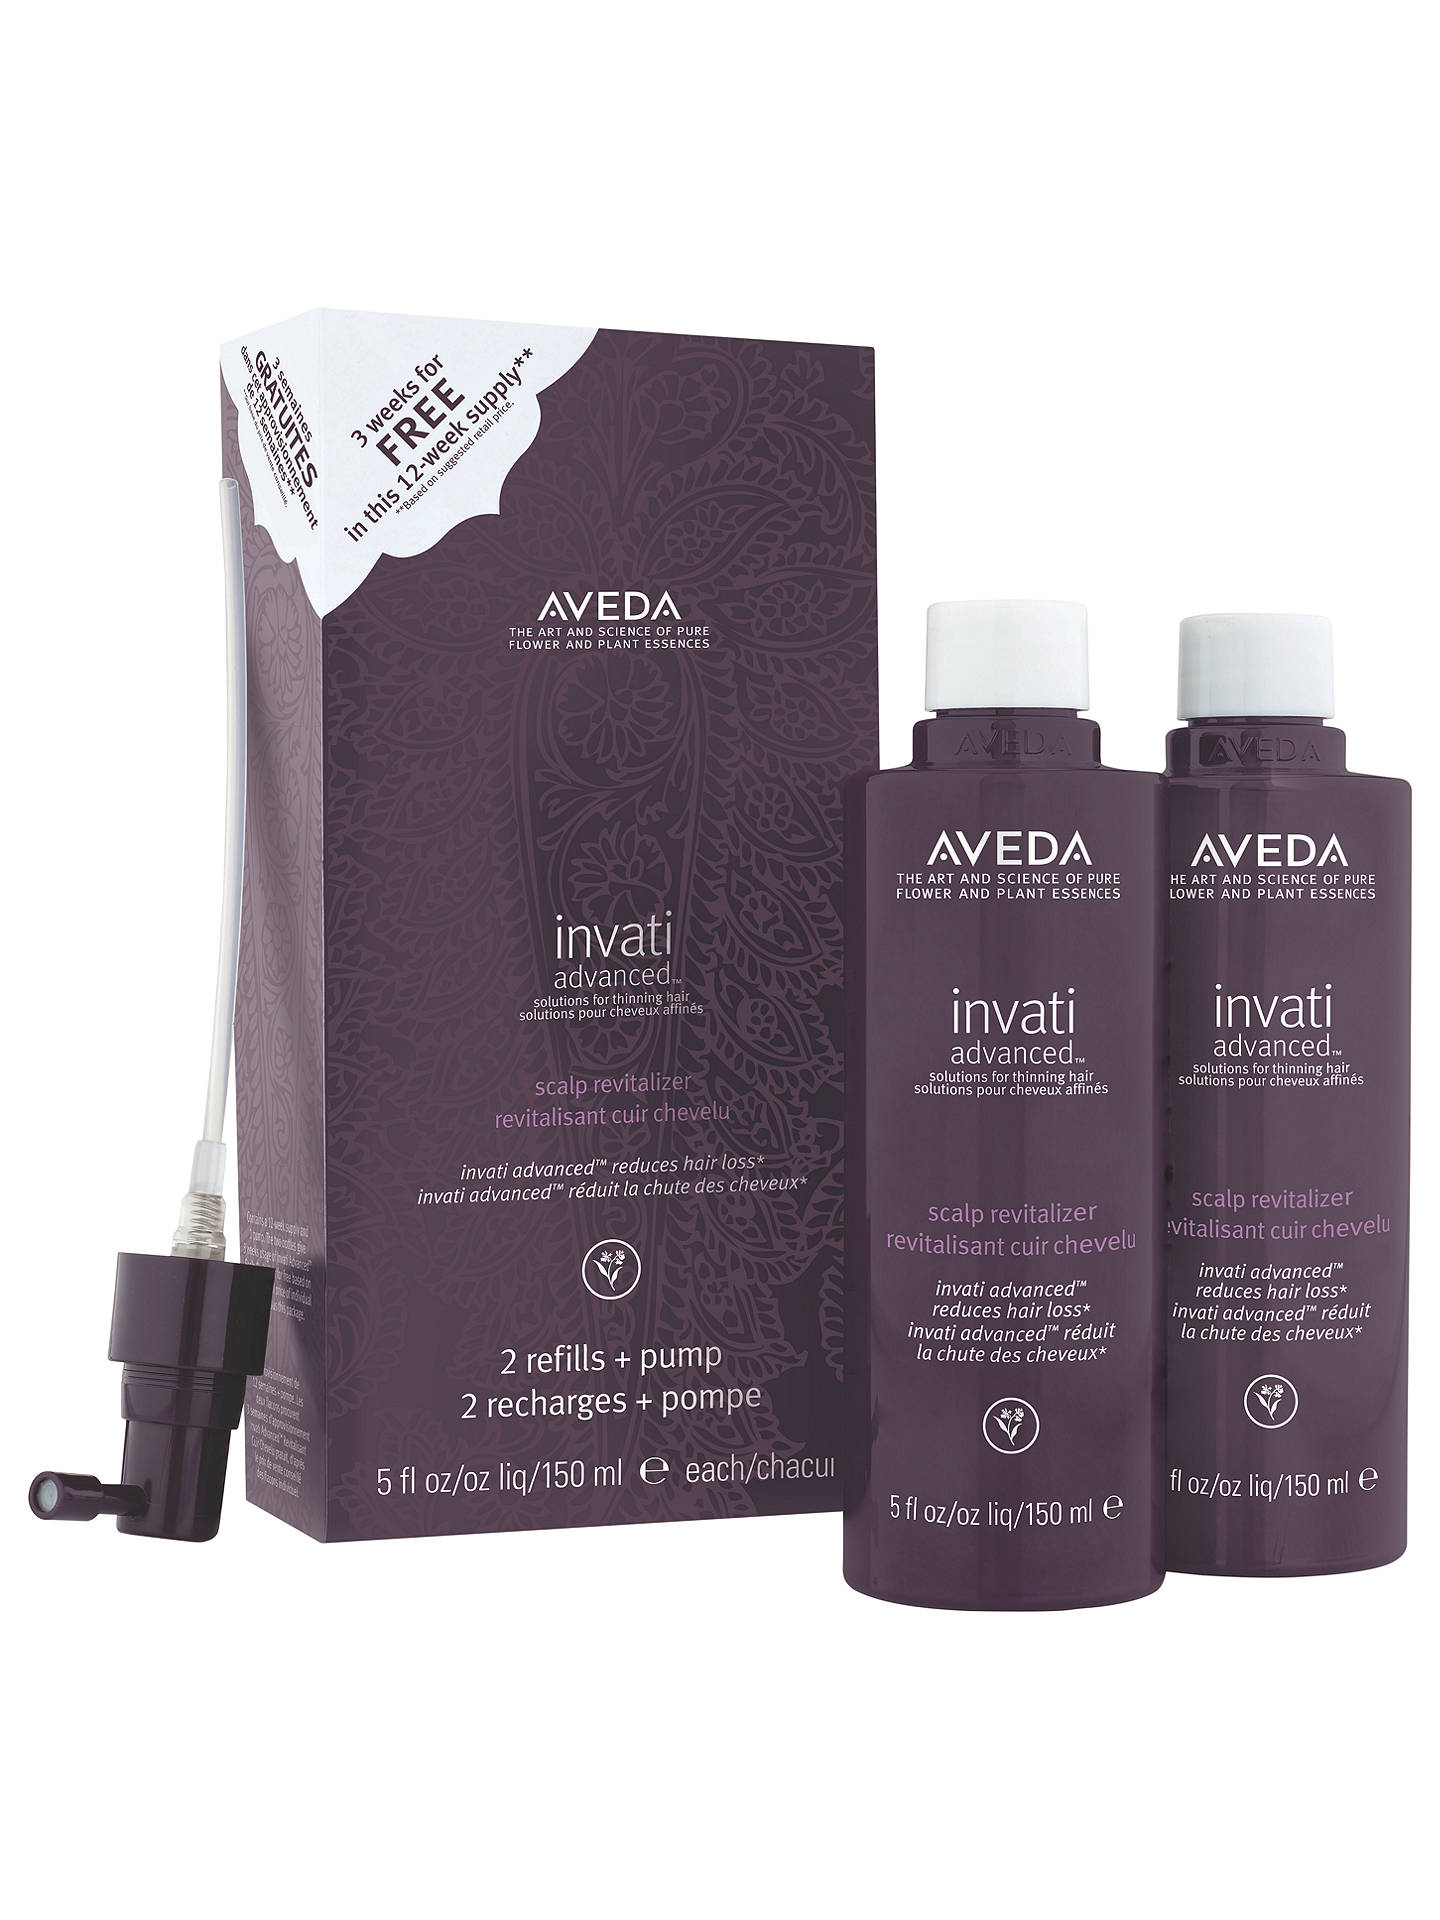 BuyAVEDA Invati Advanced™ Scalp Relitalizer Duo, 2 x 150ml Online at johnlewis.com